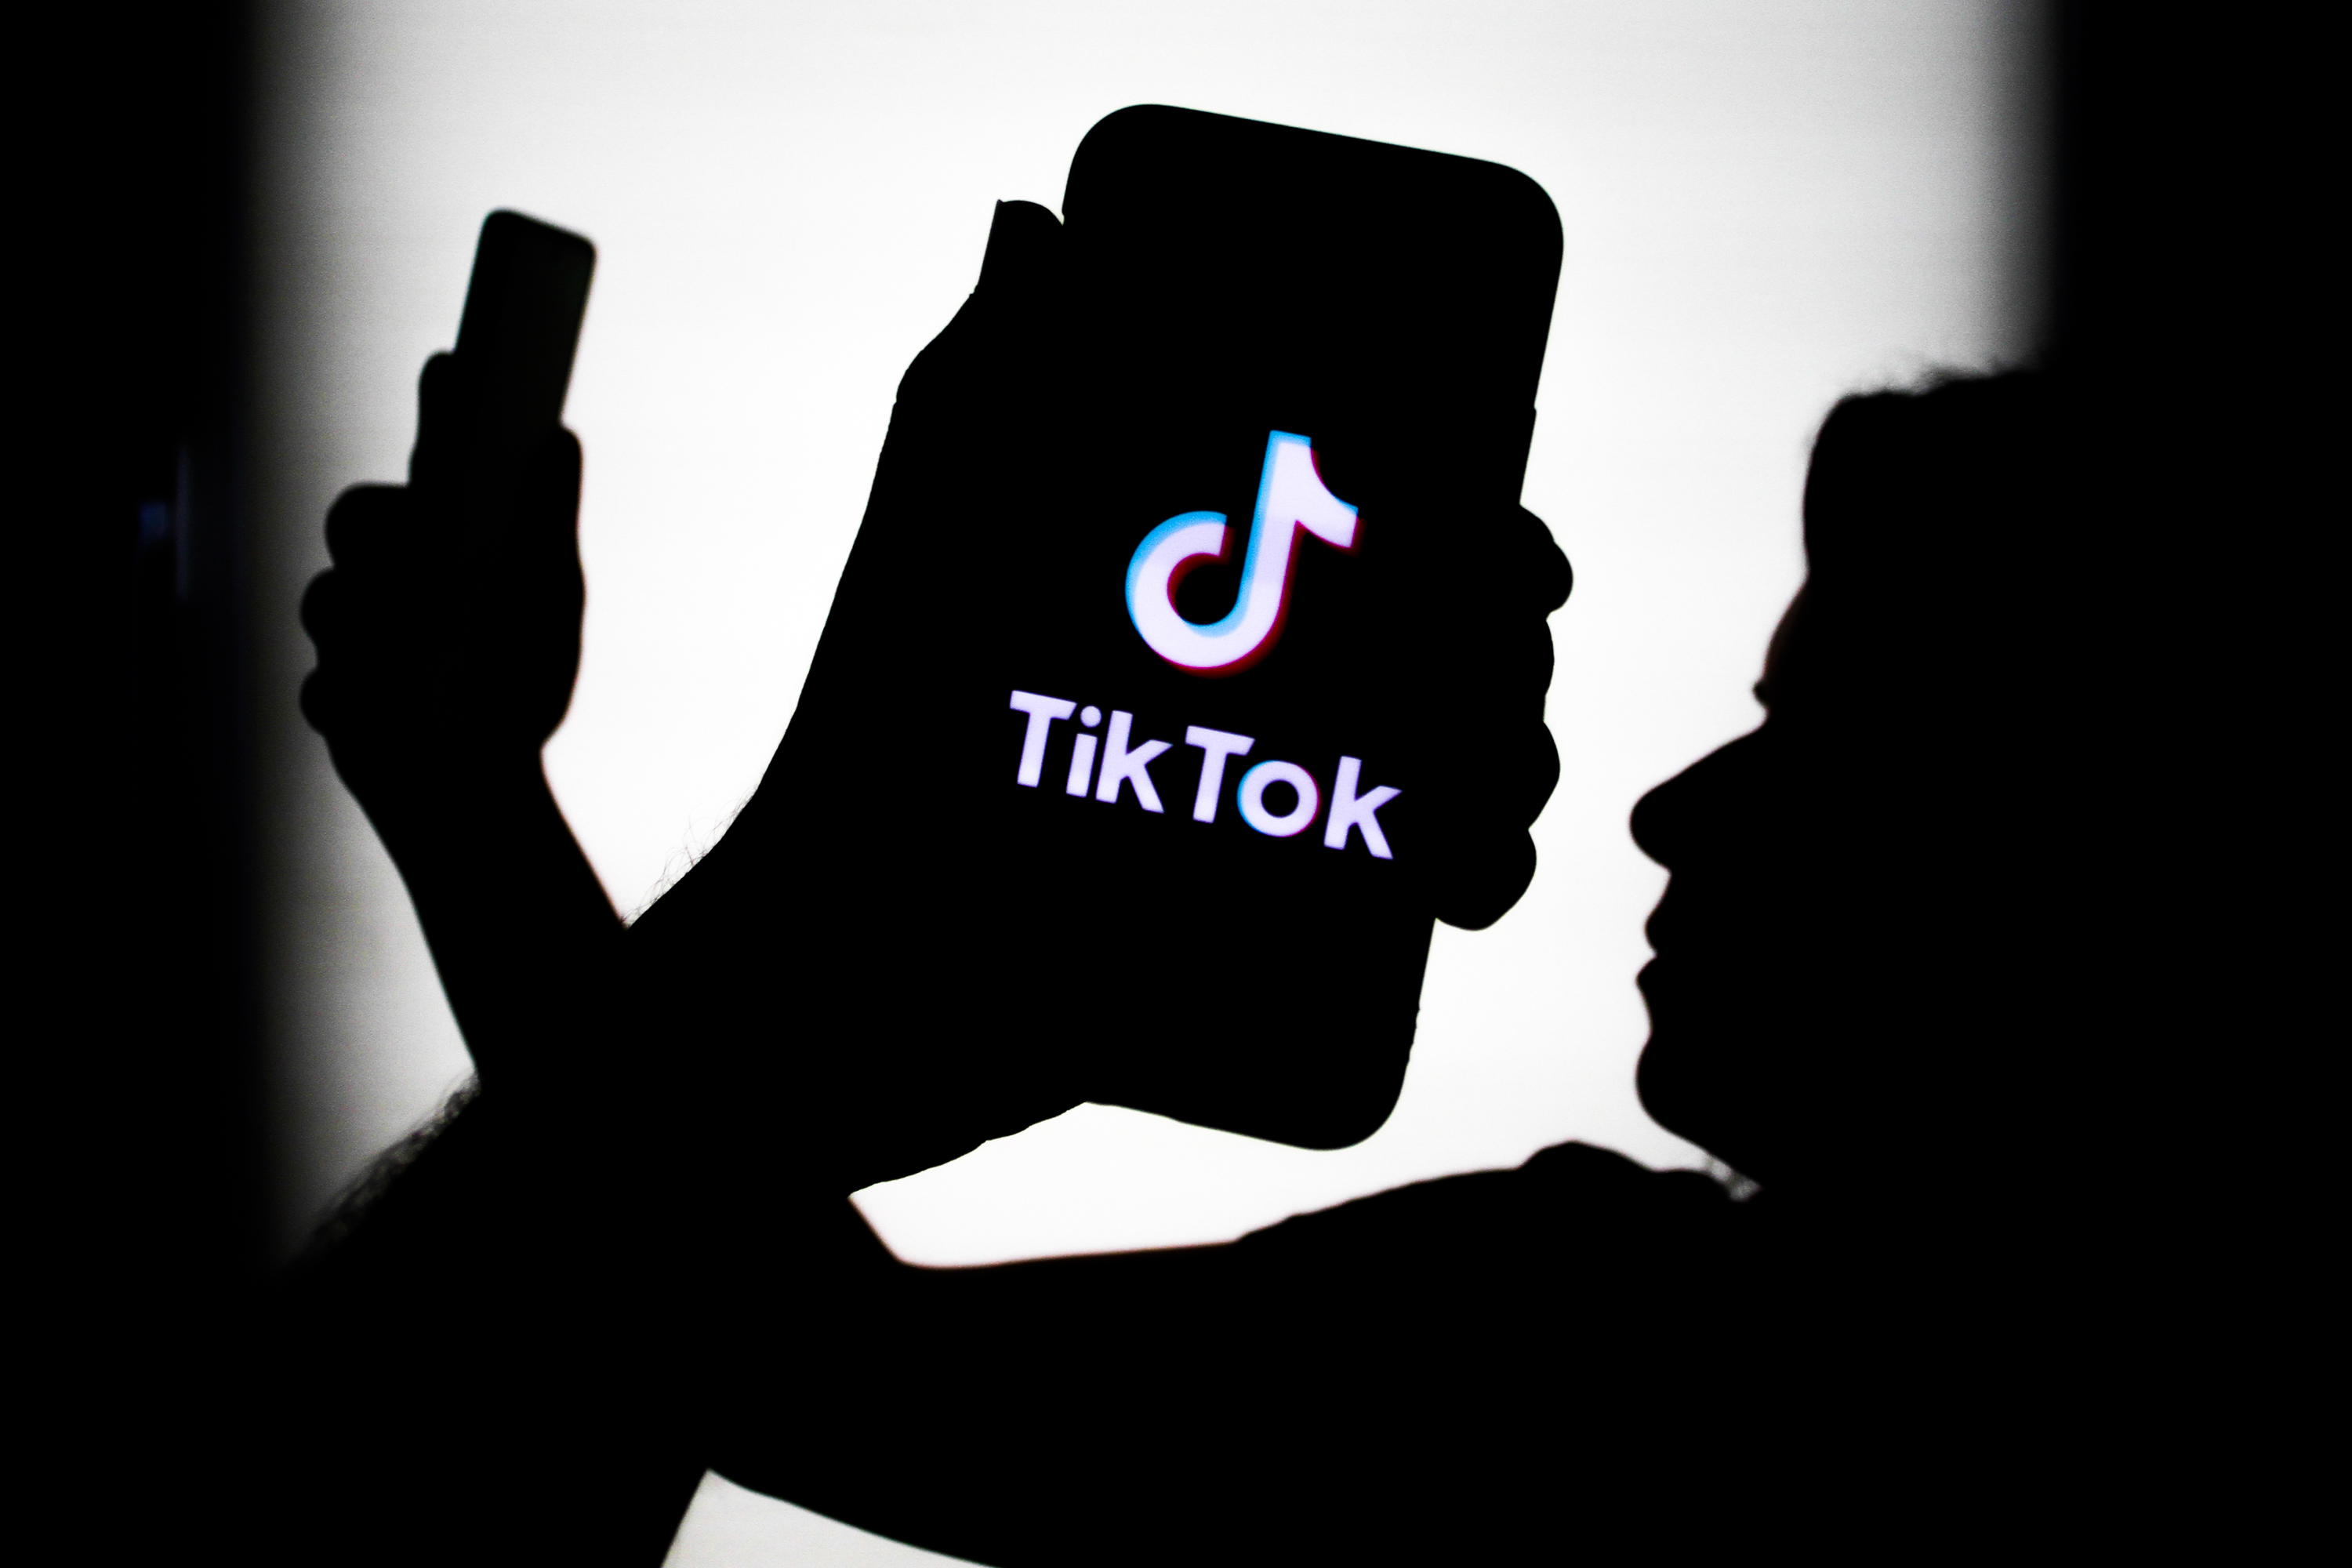 This Dangerous TikTok Challenge Just Killed a 12-Year-Old - vice